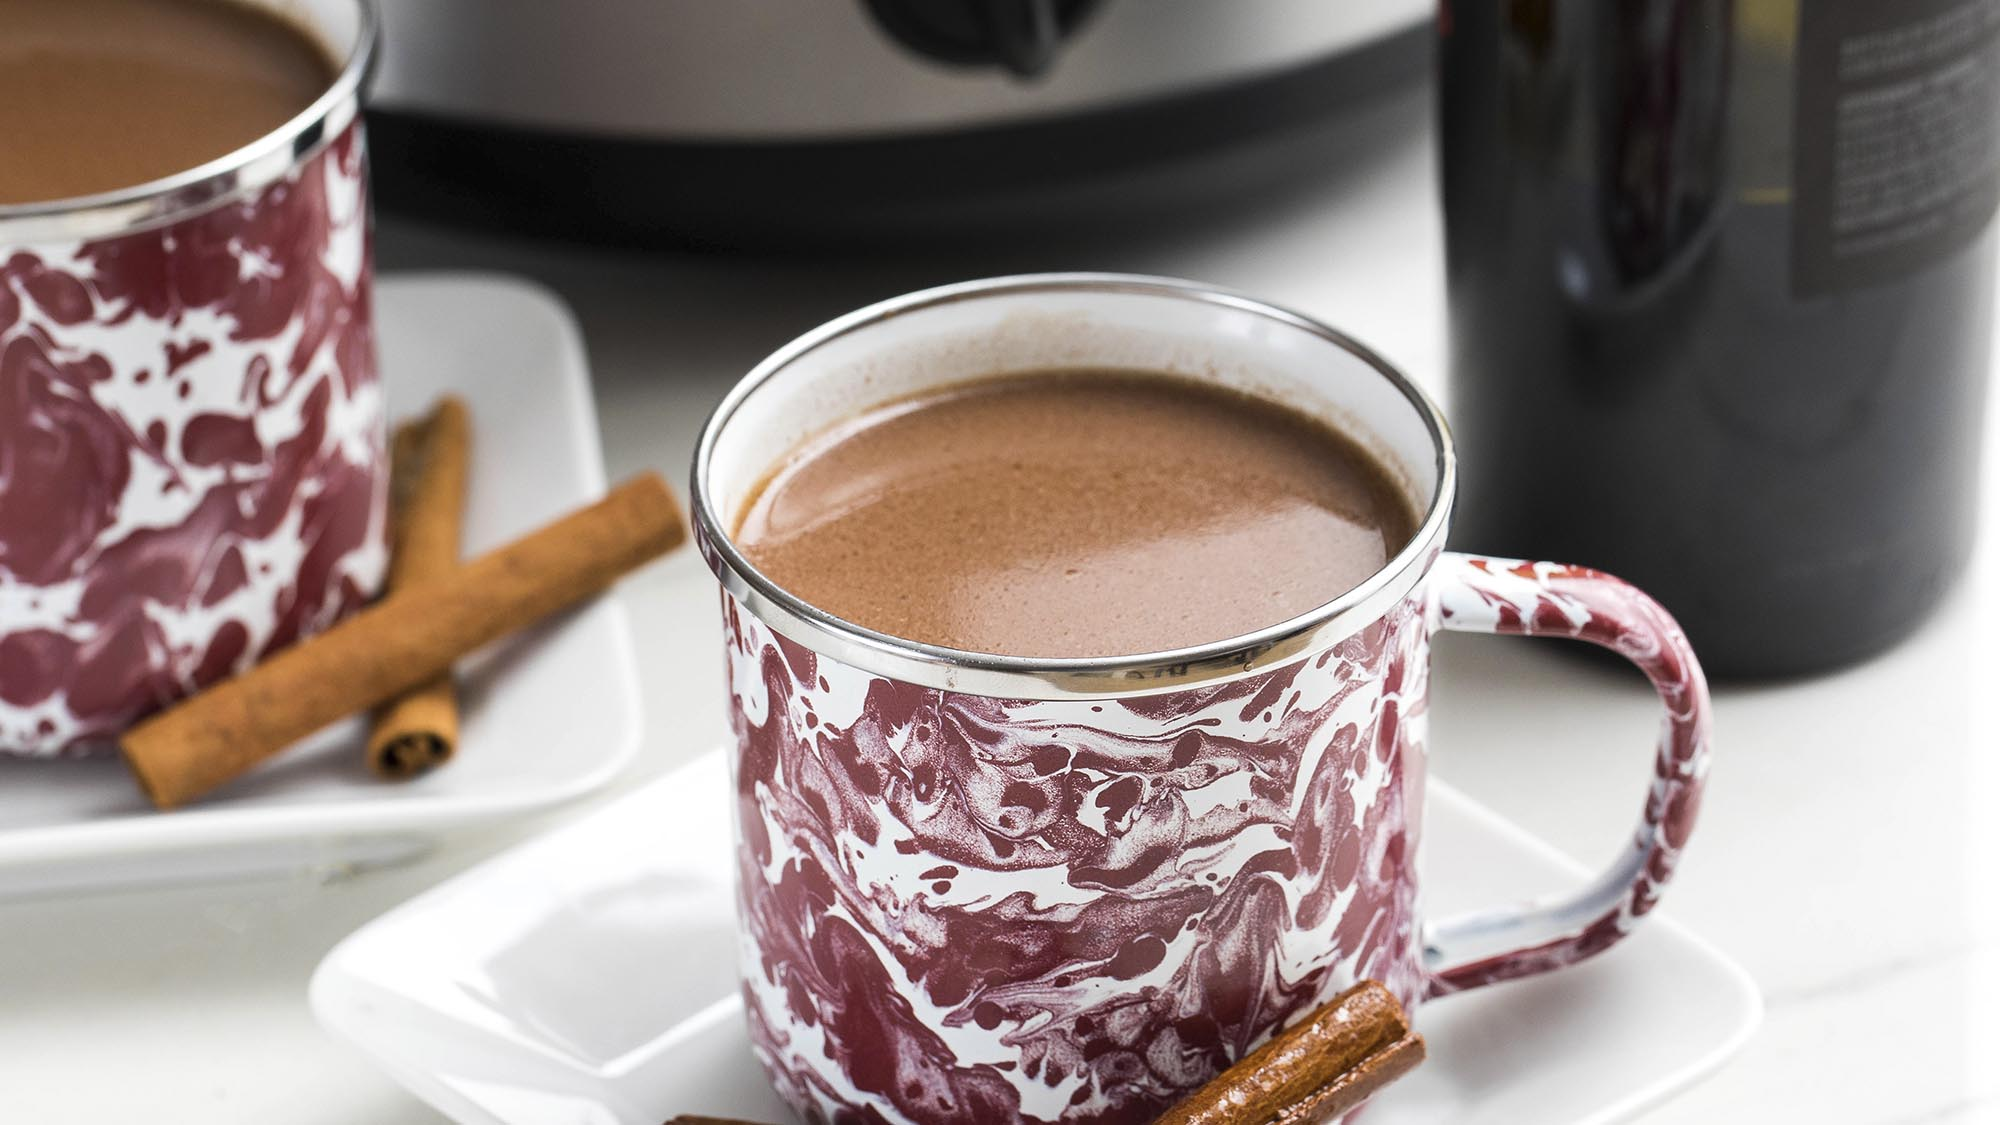 McCormick Red Wine Hot Chocolate